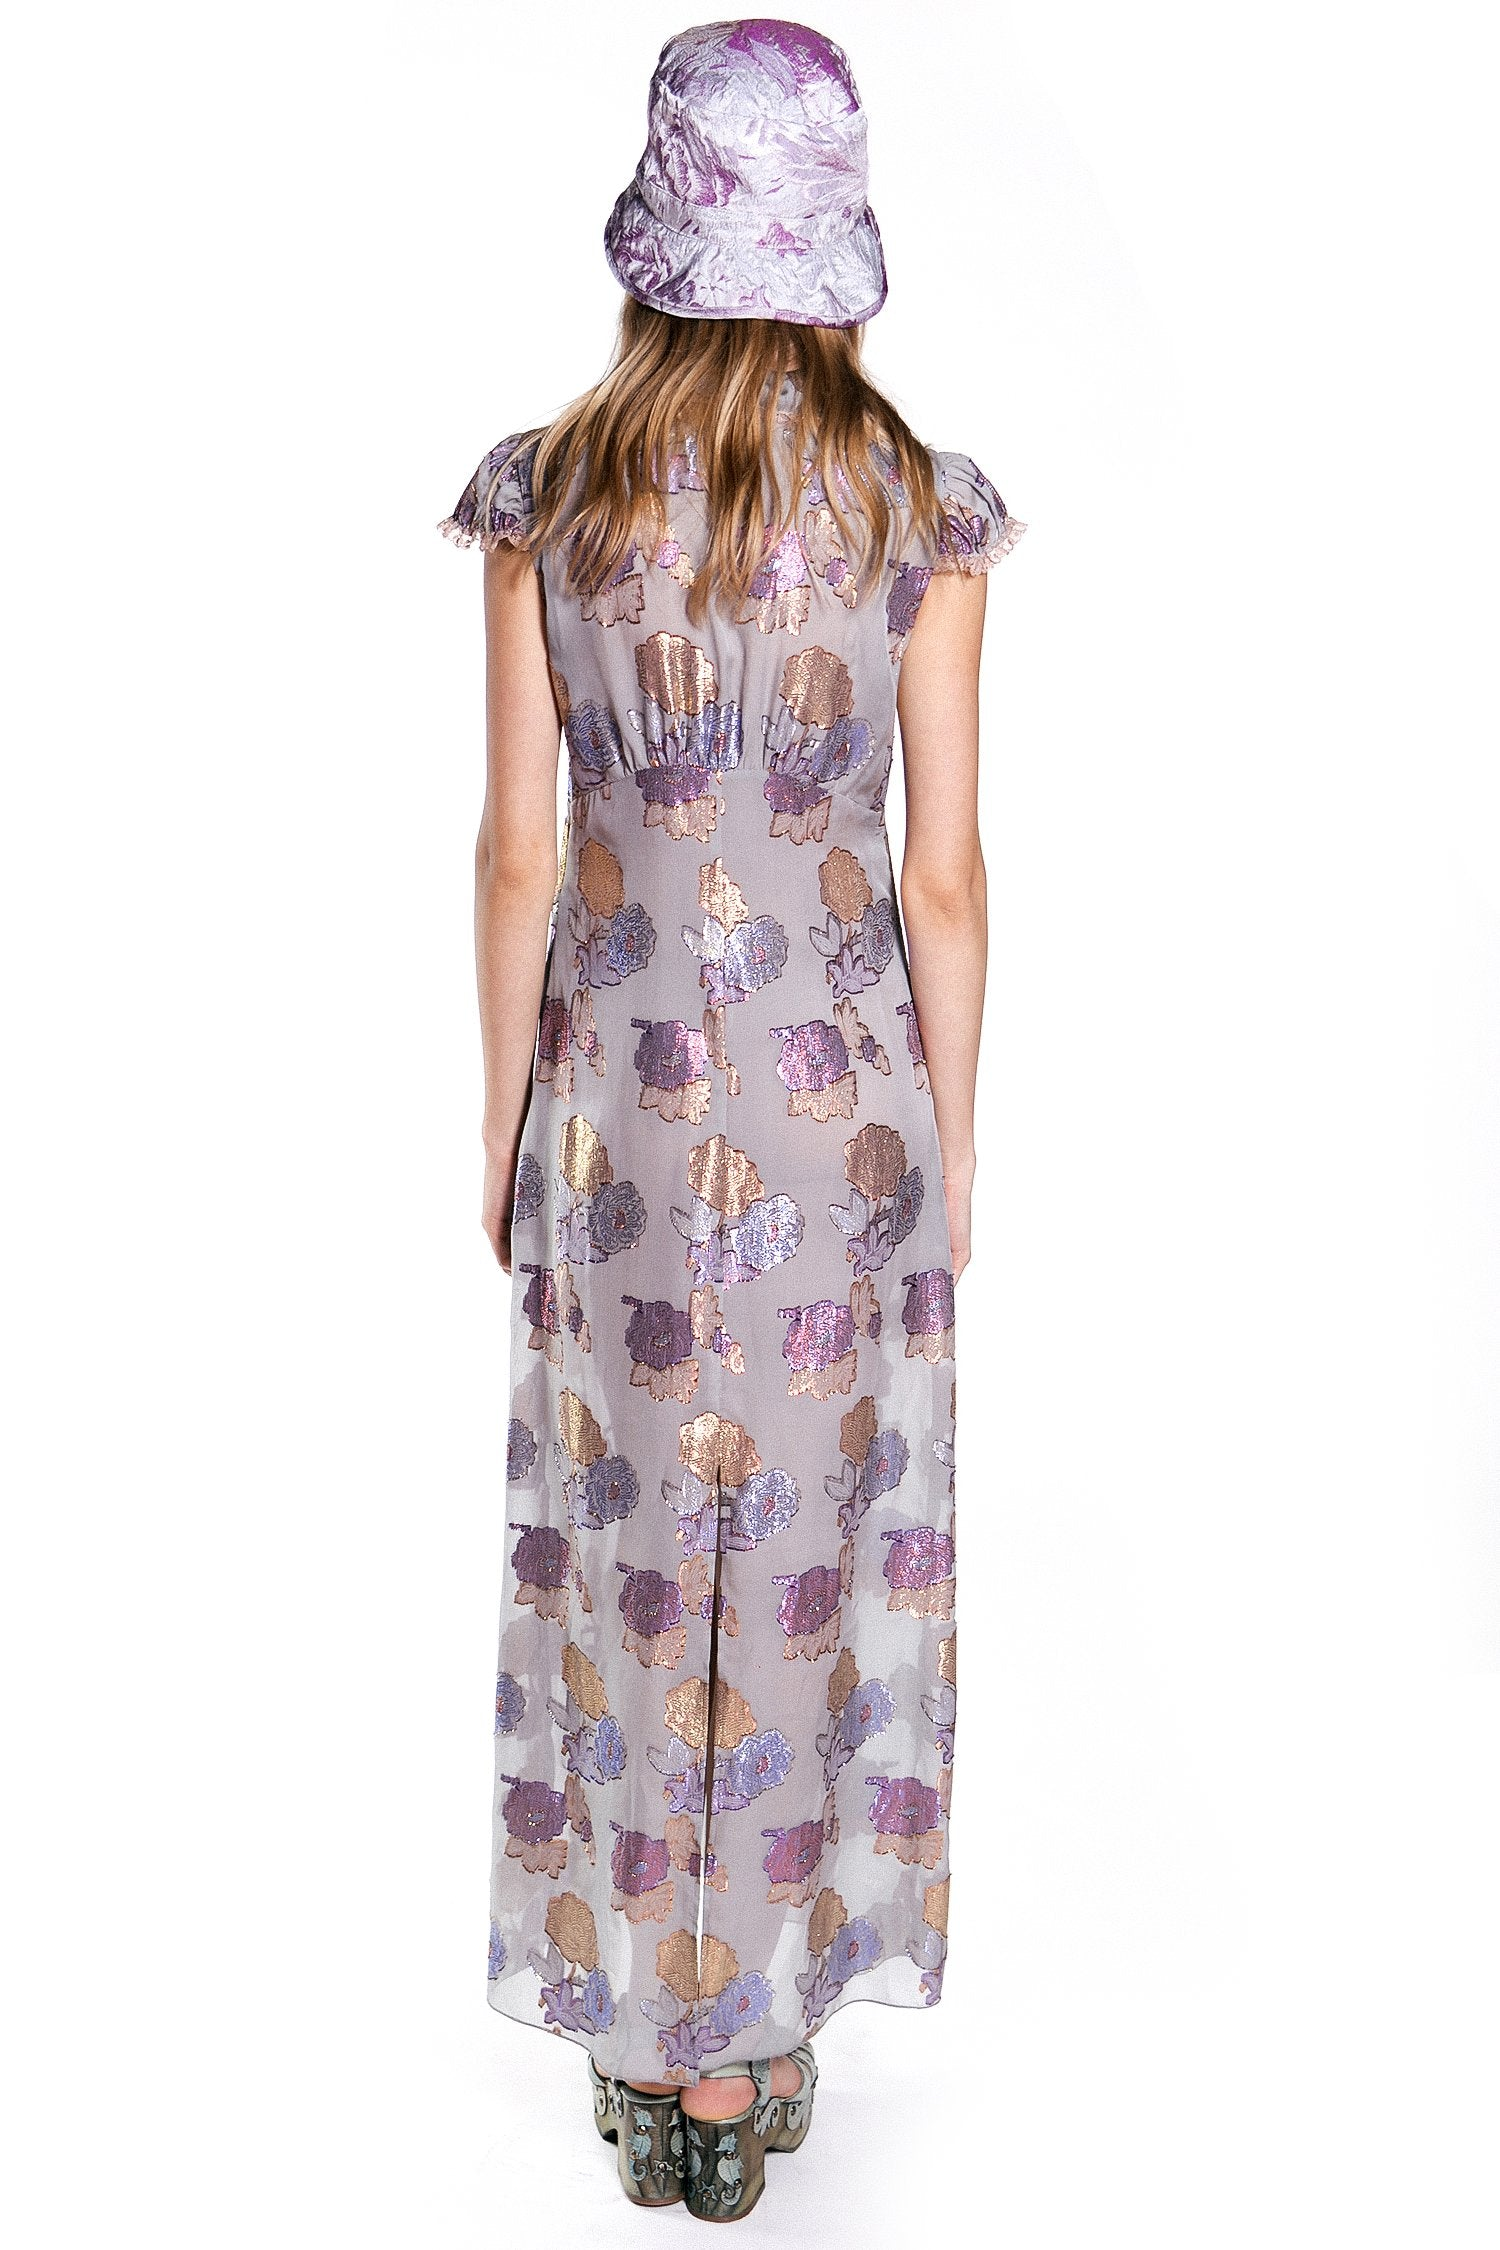 Bijou Roses Lurex Dress - Anna Sui